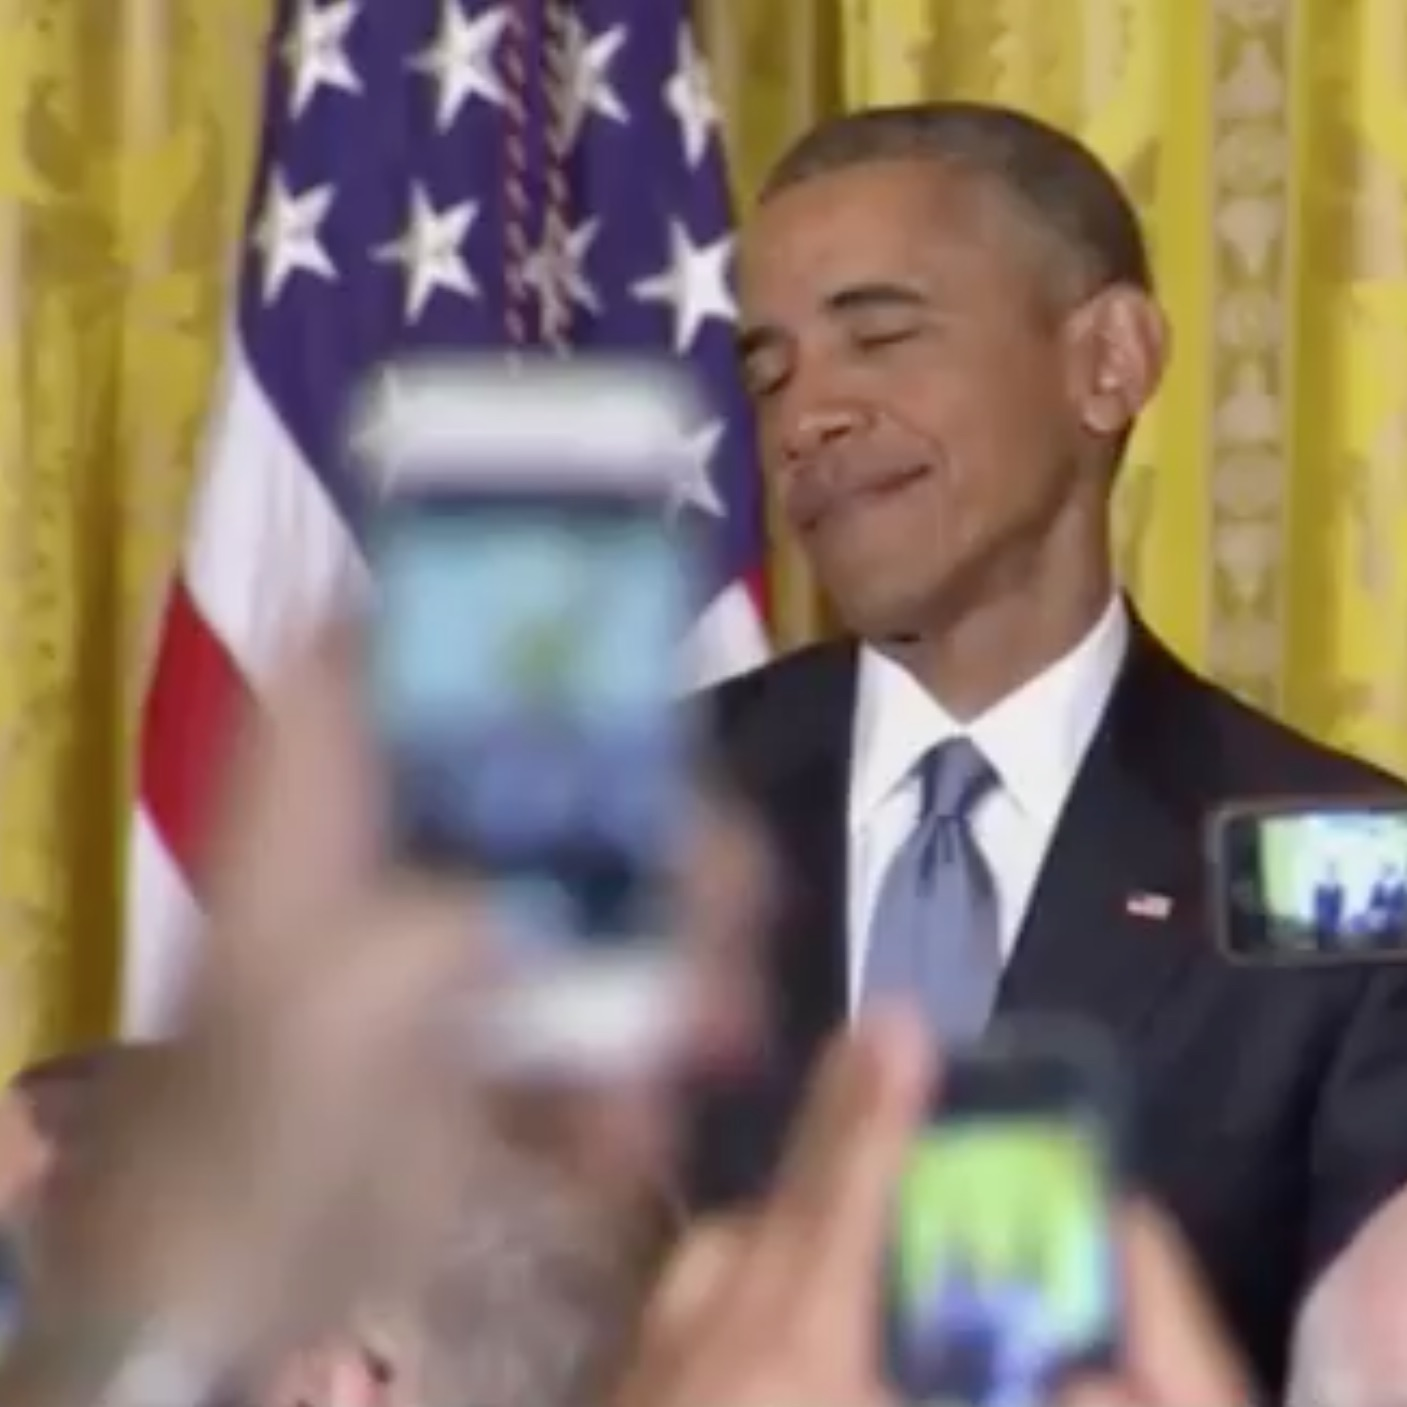 """Screenshot of Obama's face when getting heckled by a transgender illegal alien activist whom his administration invited to the White House to celebrate """"LGBT Pride Month"""" June 2015."""